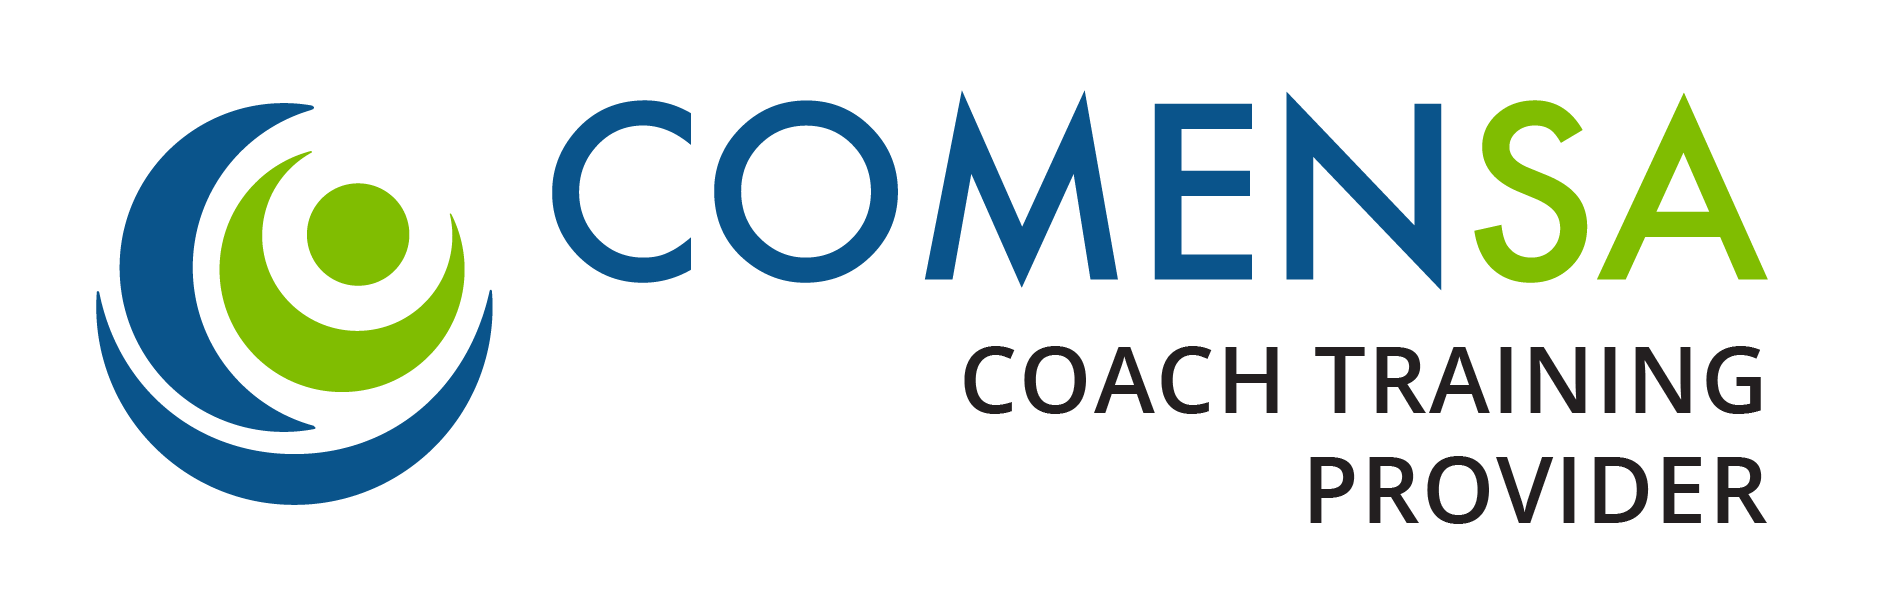 COMENSA coach training provider